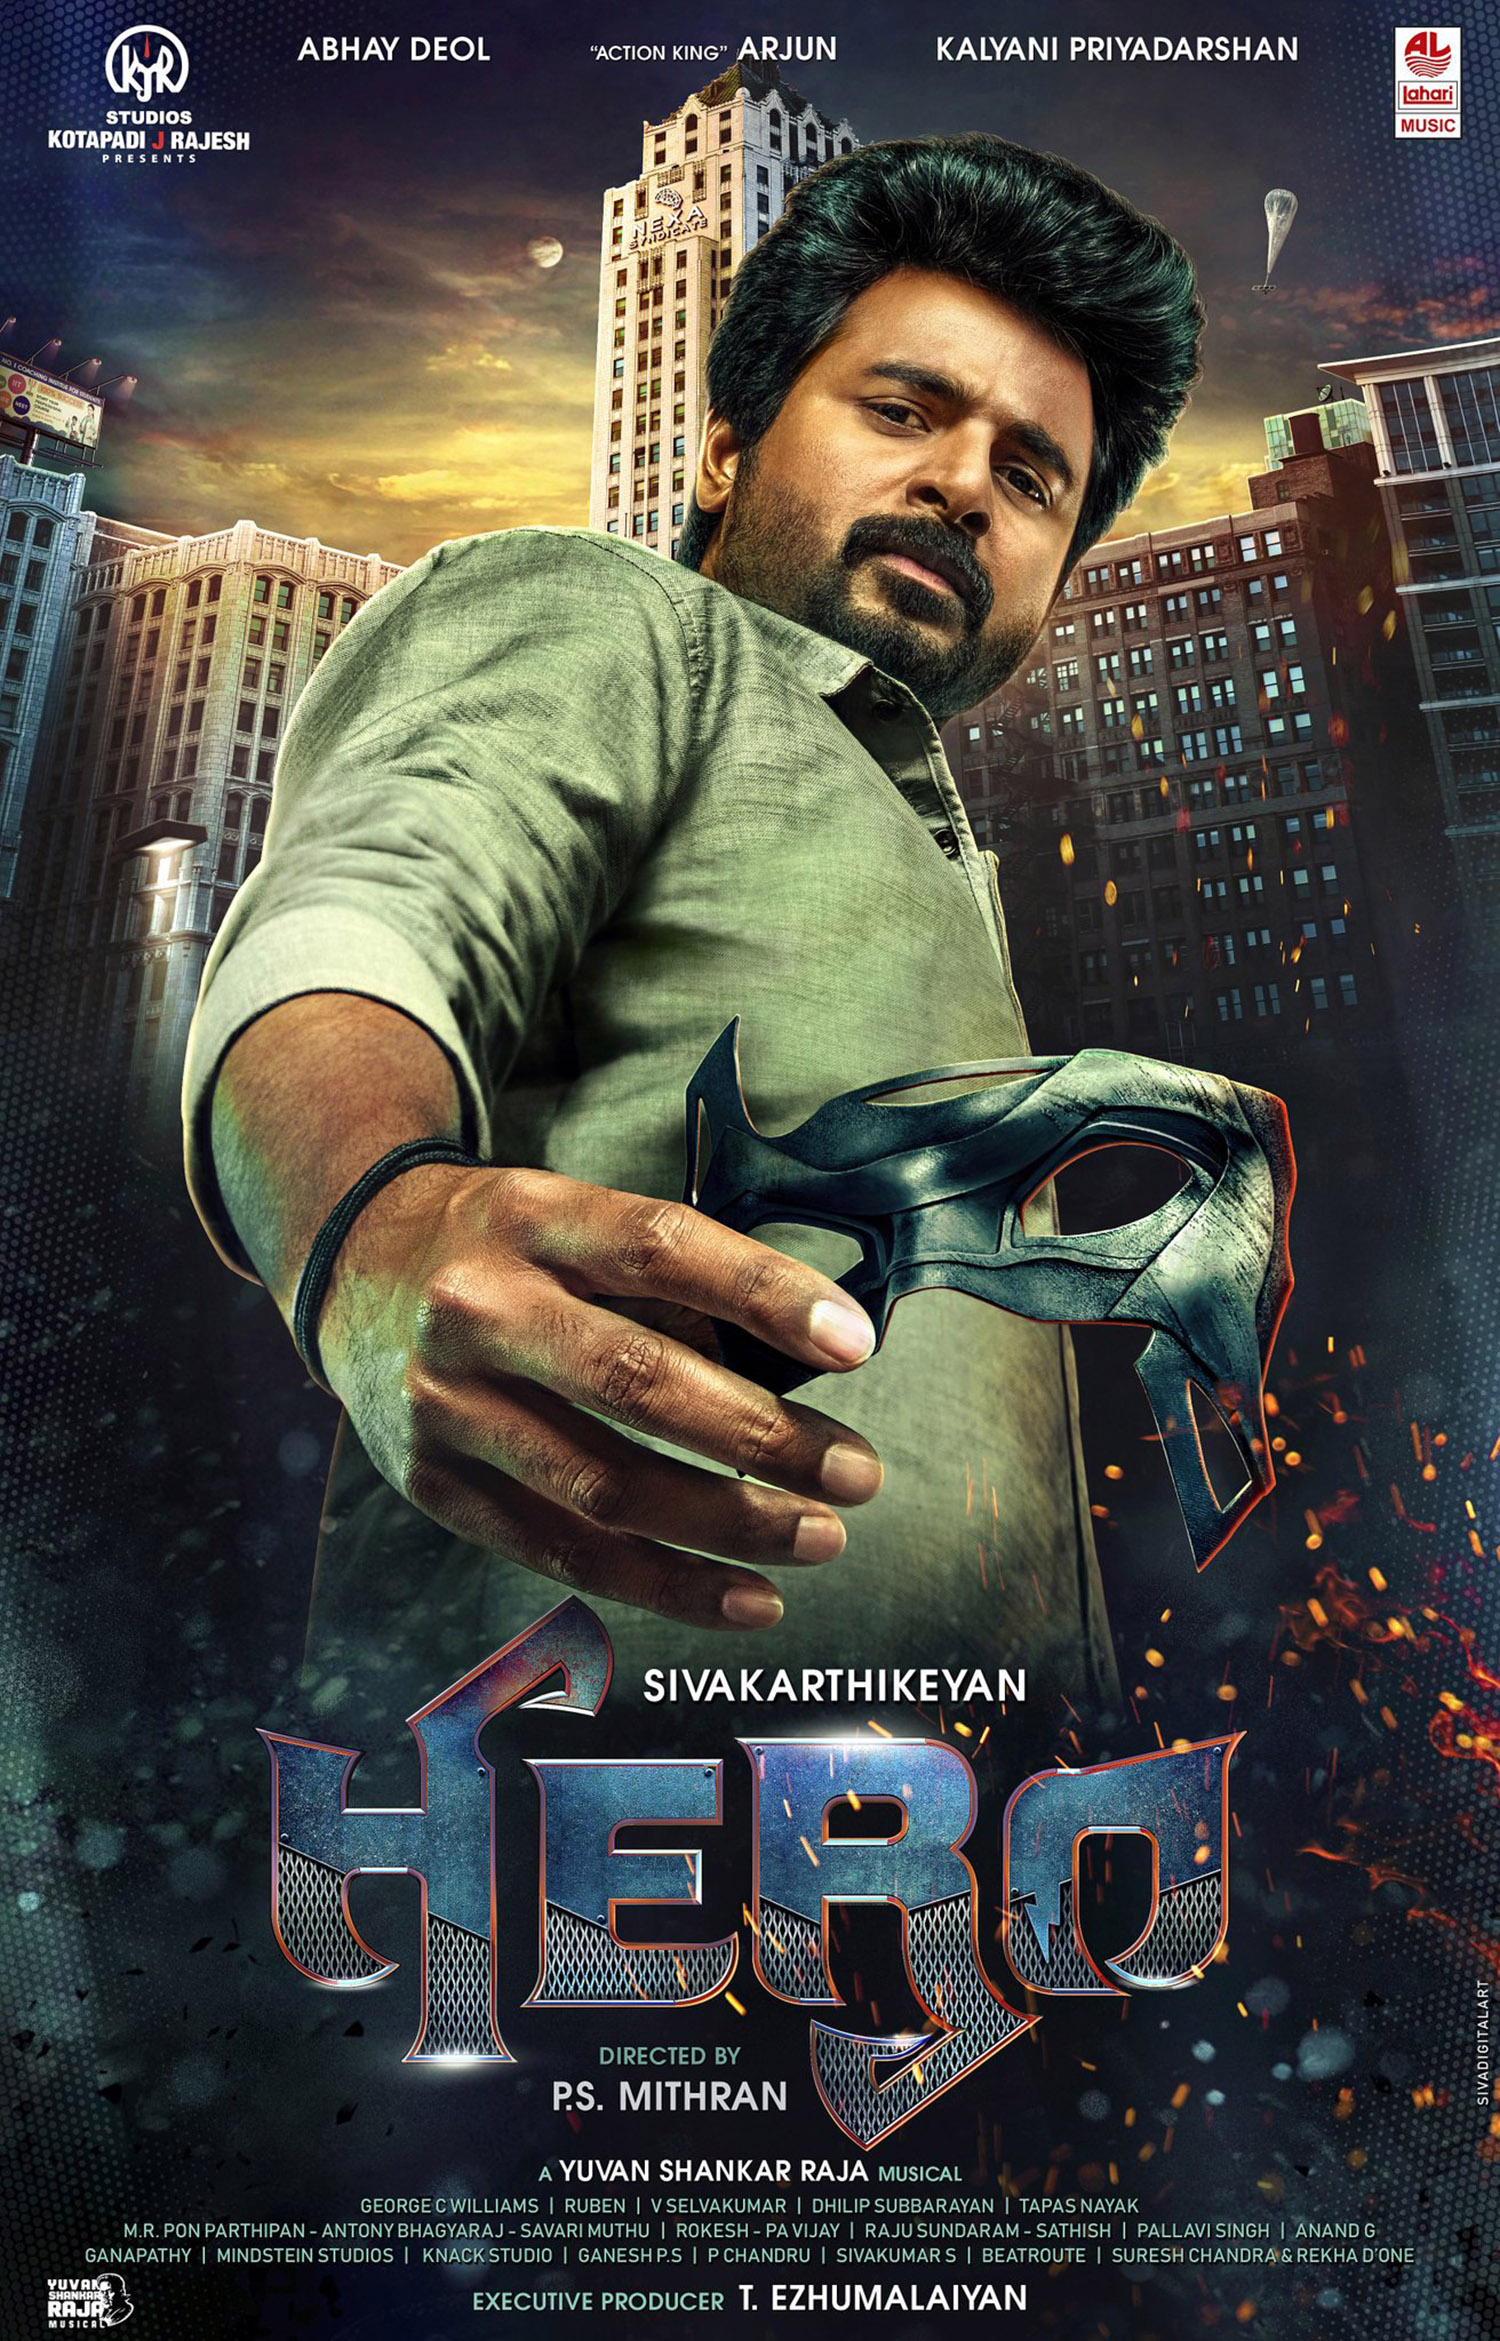 Hero,Hero tamil film first look poster,hero first look poster, Sivakarthikeyan Hero New Film, Sivakarthikeyan Hero First Look Poster, Sivakarthikeyan new film, Sivakarthikeyan new film hero,sivakarthikeyan film news,sivakarthikeyan latest news,hero new tamil film,actor arjun,Abhay Deol,kalyani priyadarshan